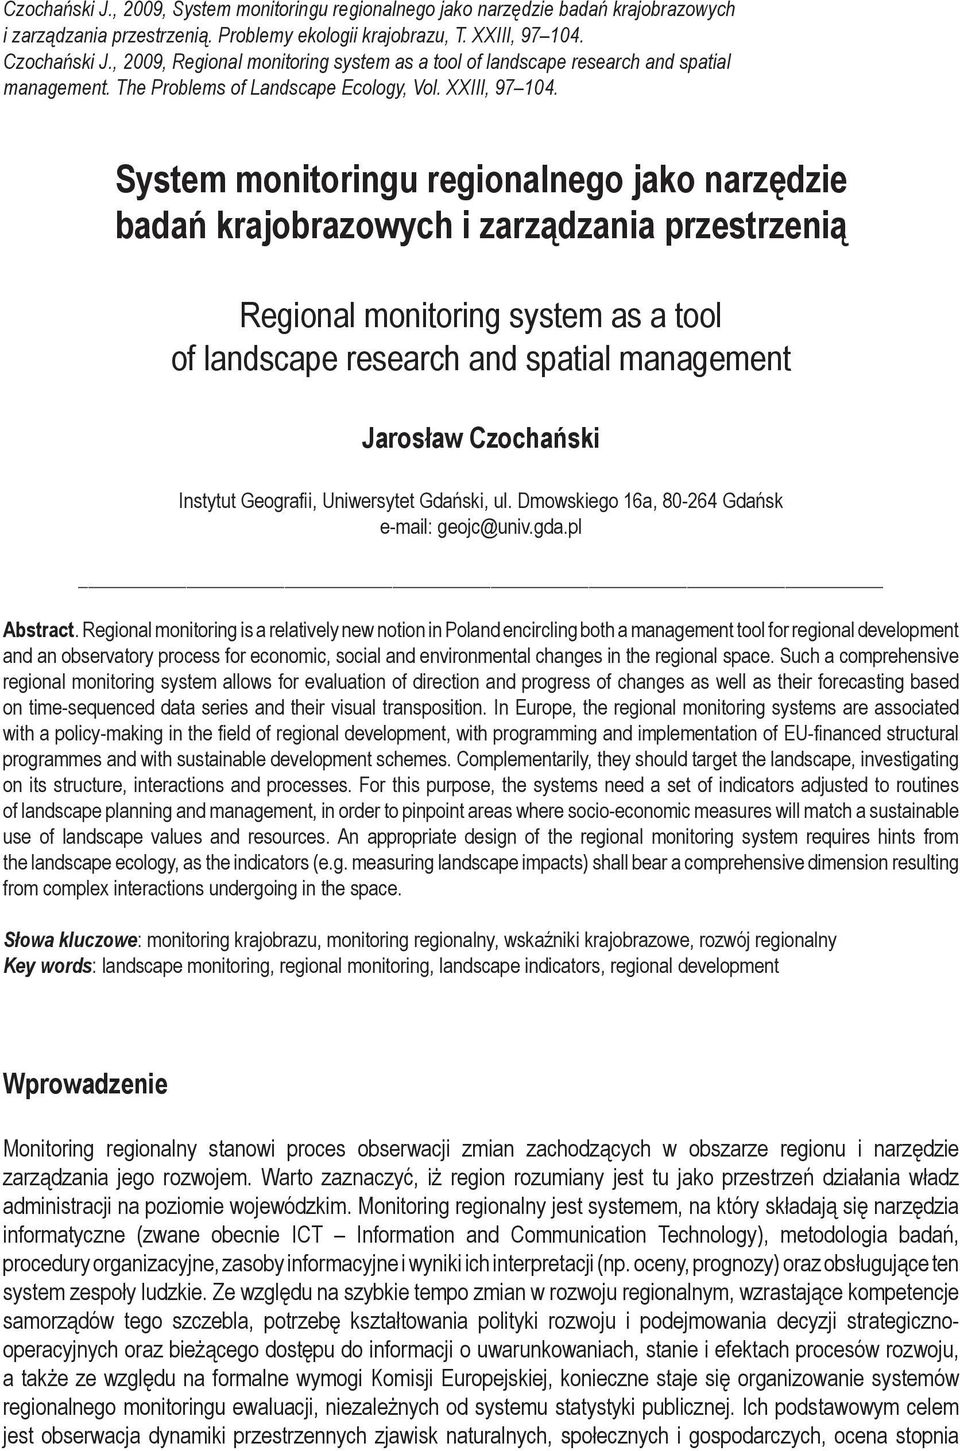 System monitoringu regionalnego jako narzędzie badań krajobrazowych i zarządzania przestrzenią Regional monitoring system as a tool of landscape research and spatial management Jarosław Czochański